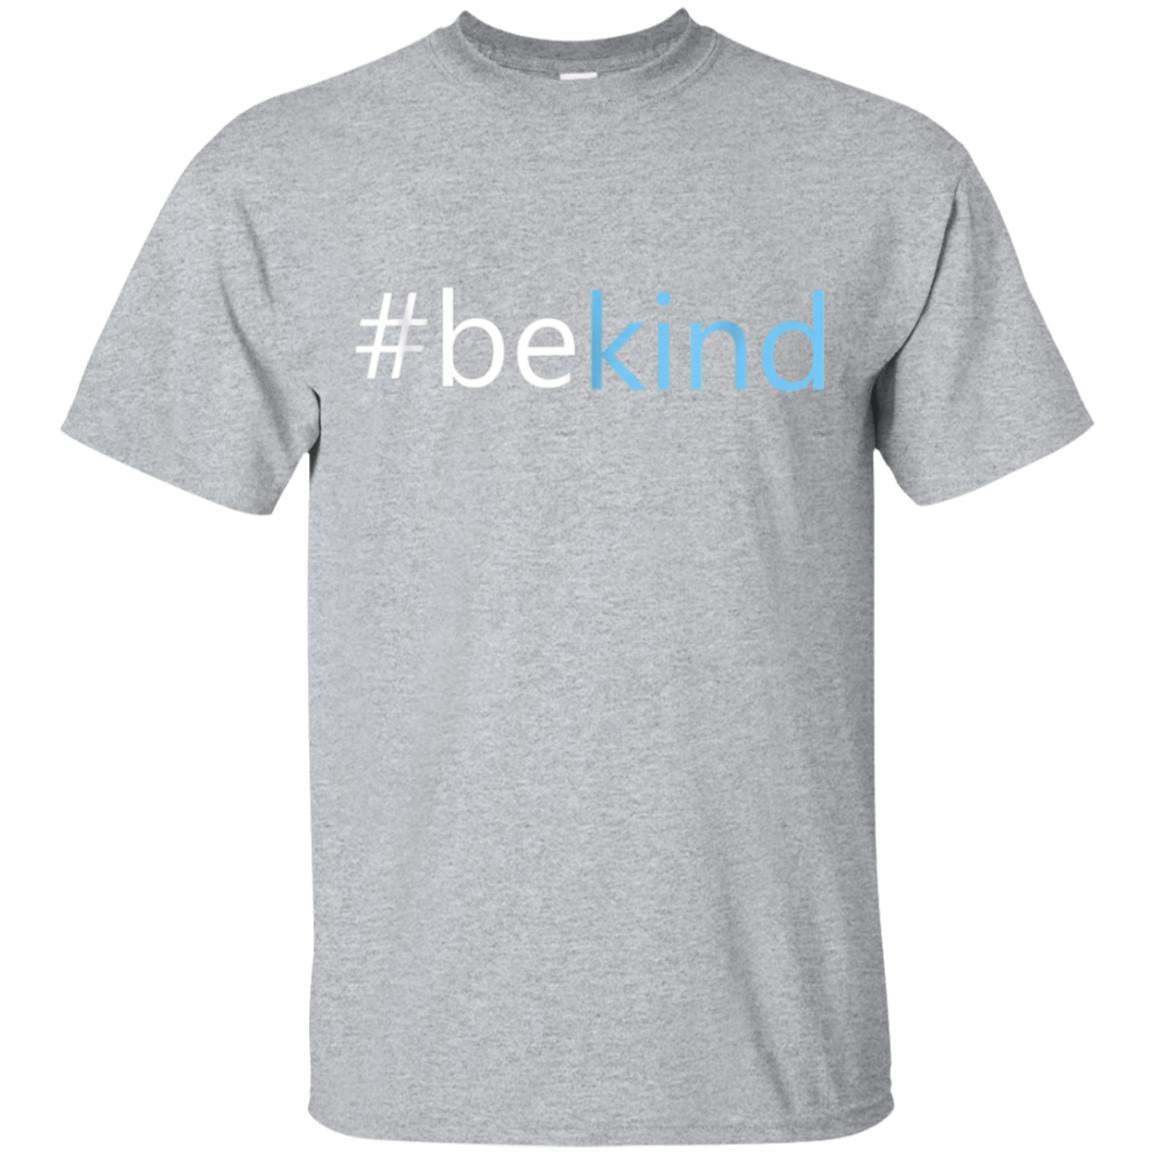 Be Kind T-Shirt - Choose Kindness Anti-Bullying Message 99promocode